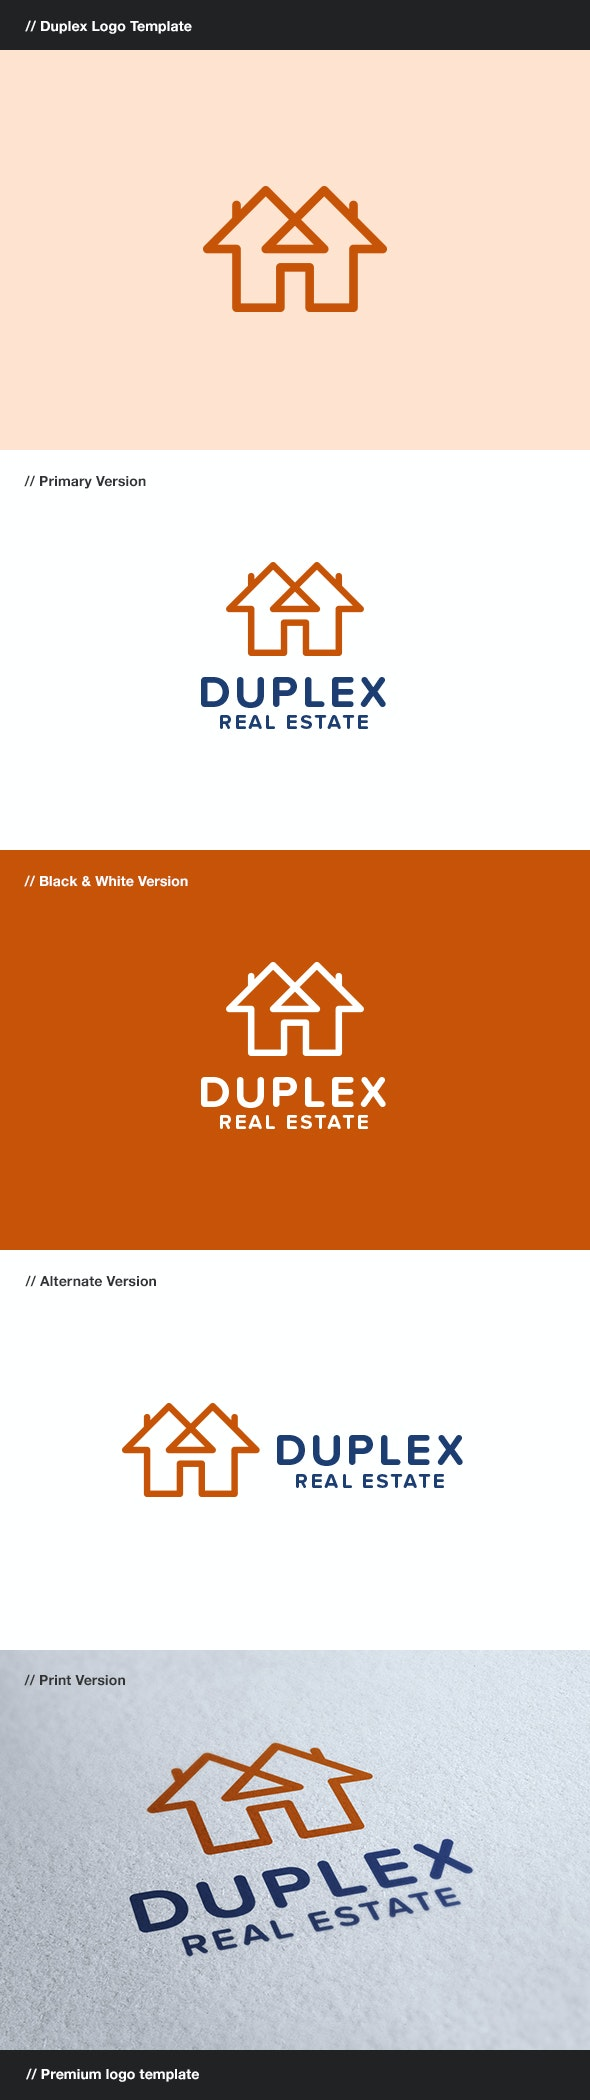 Duplex - Construction & Real Estate Logo - Buildings Logo Templates